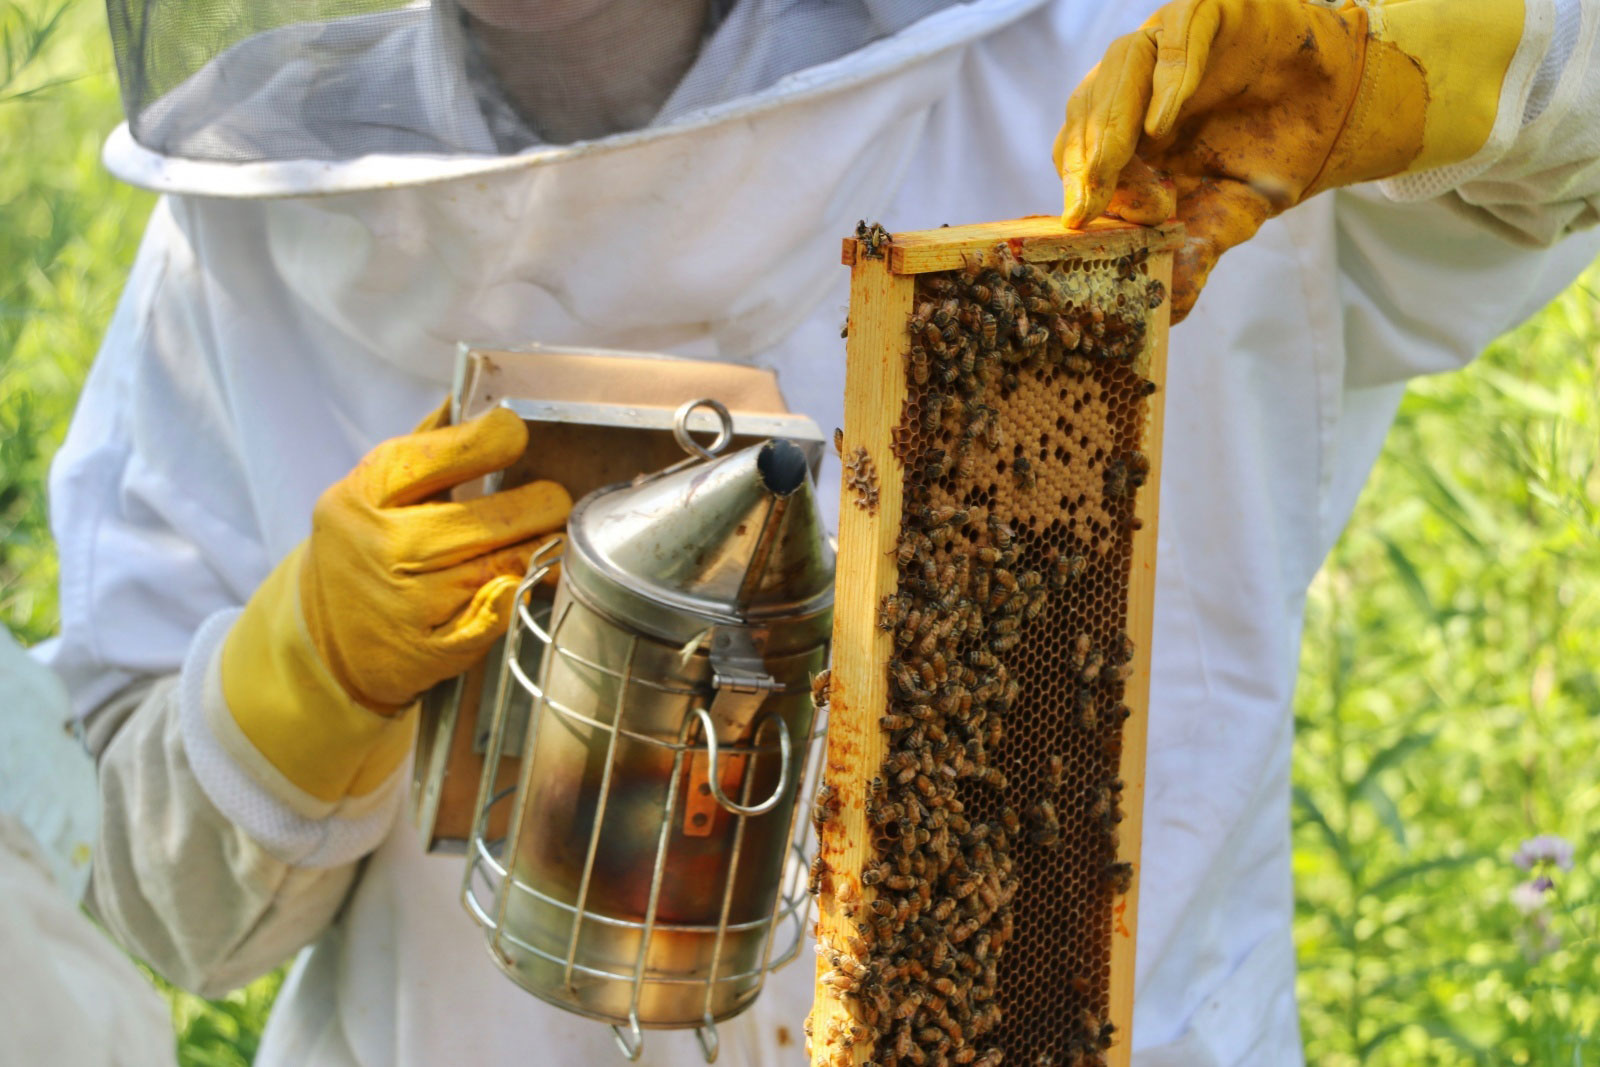 Discussion on this topic: How to Harvest Royal Jelly, how-to-harvest-royal-jelly/